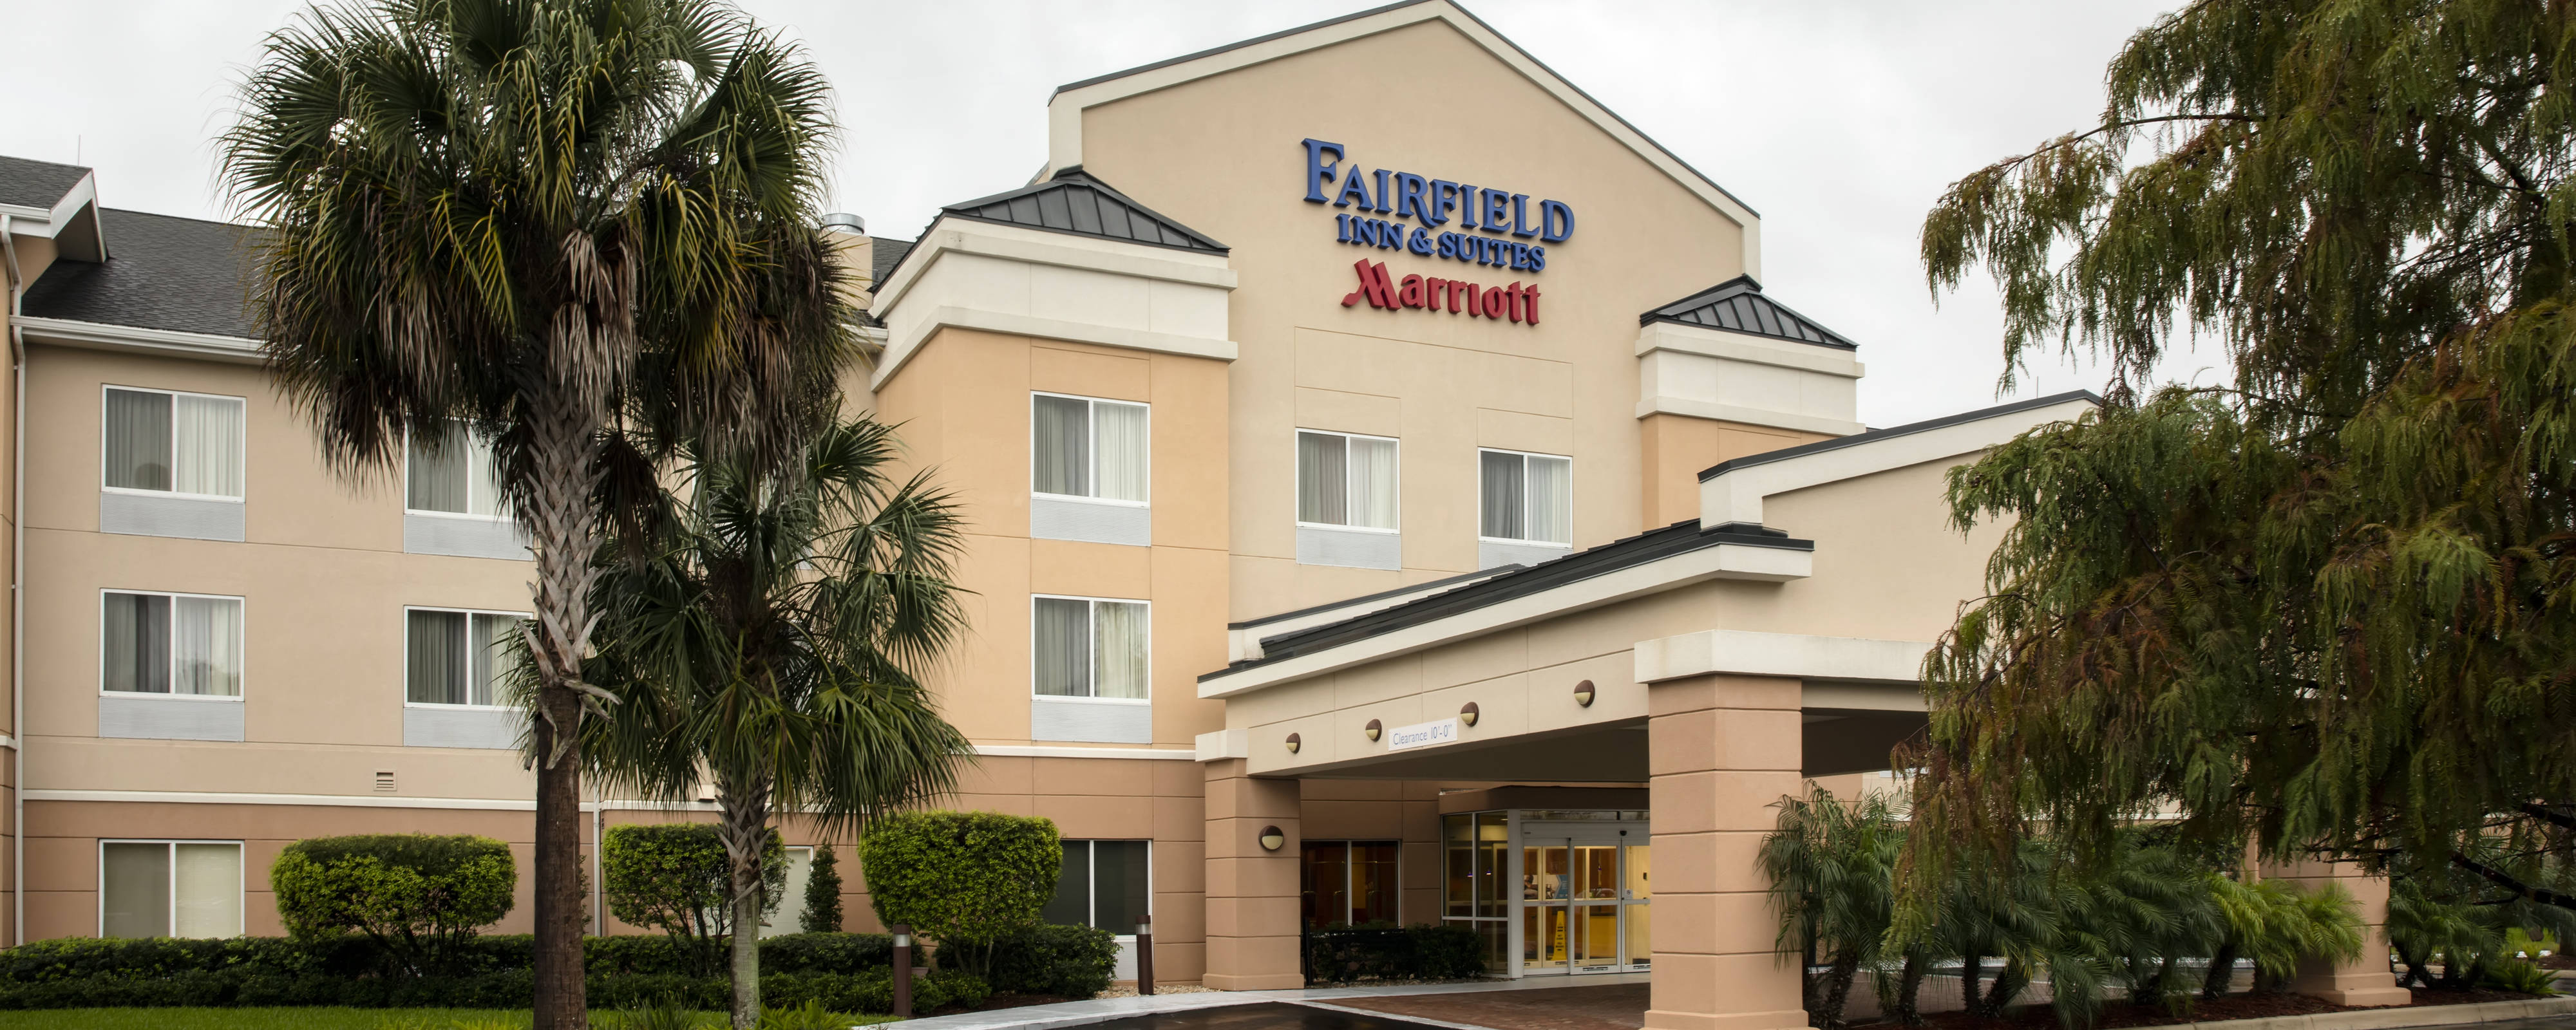 Hotels In Plant City, Fl | Fairfield Inn & Suites Lakeland Plant City - Lakeland Florida Hotels Map